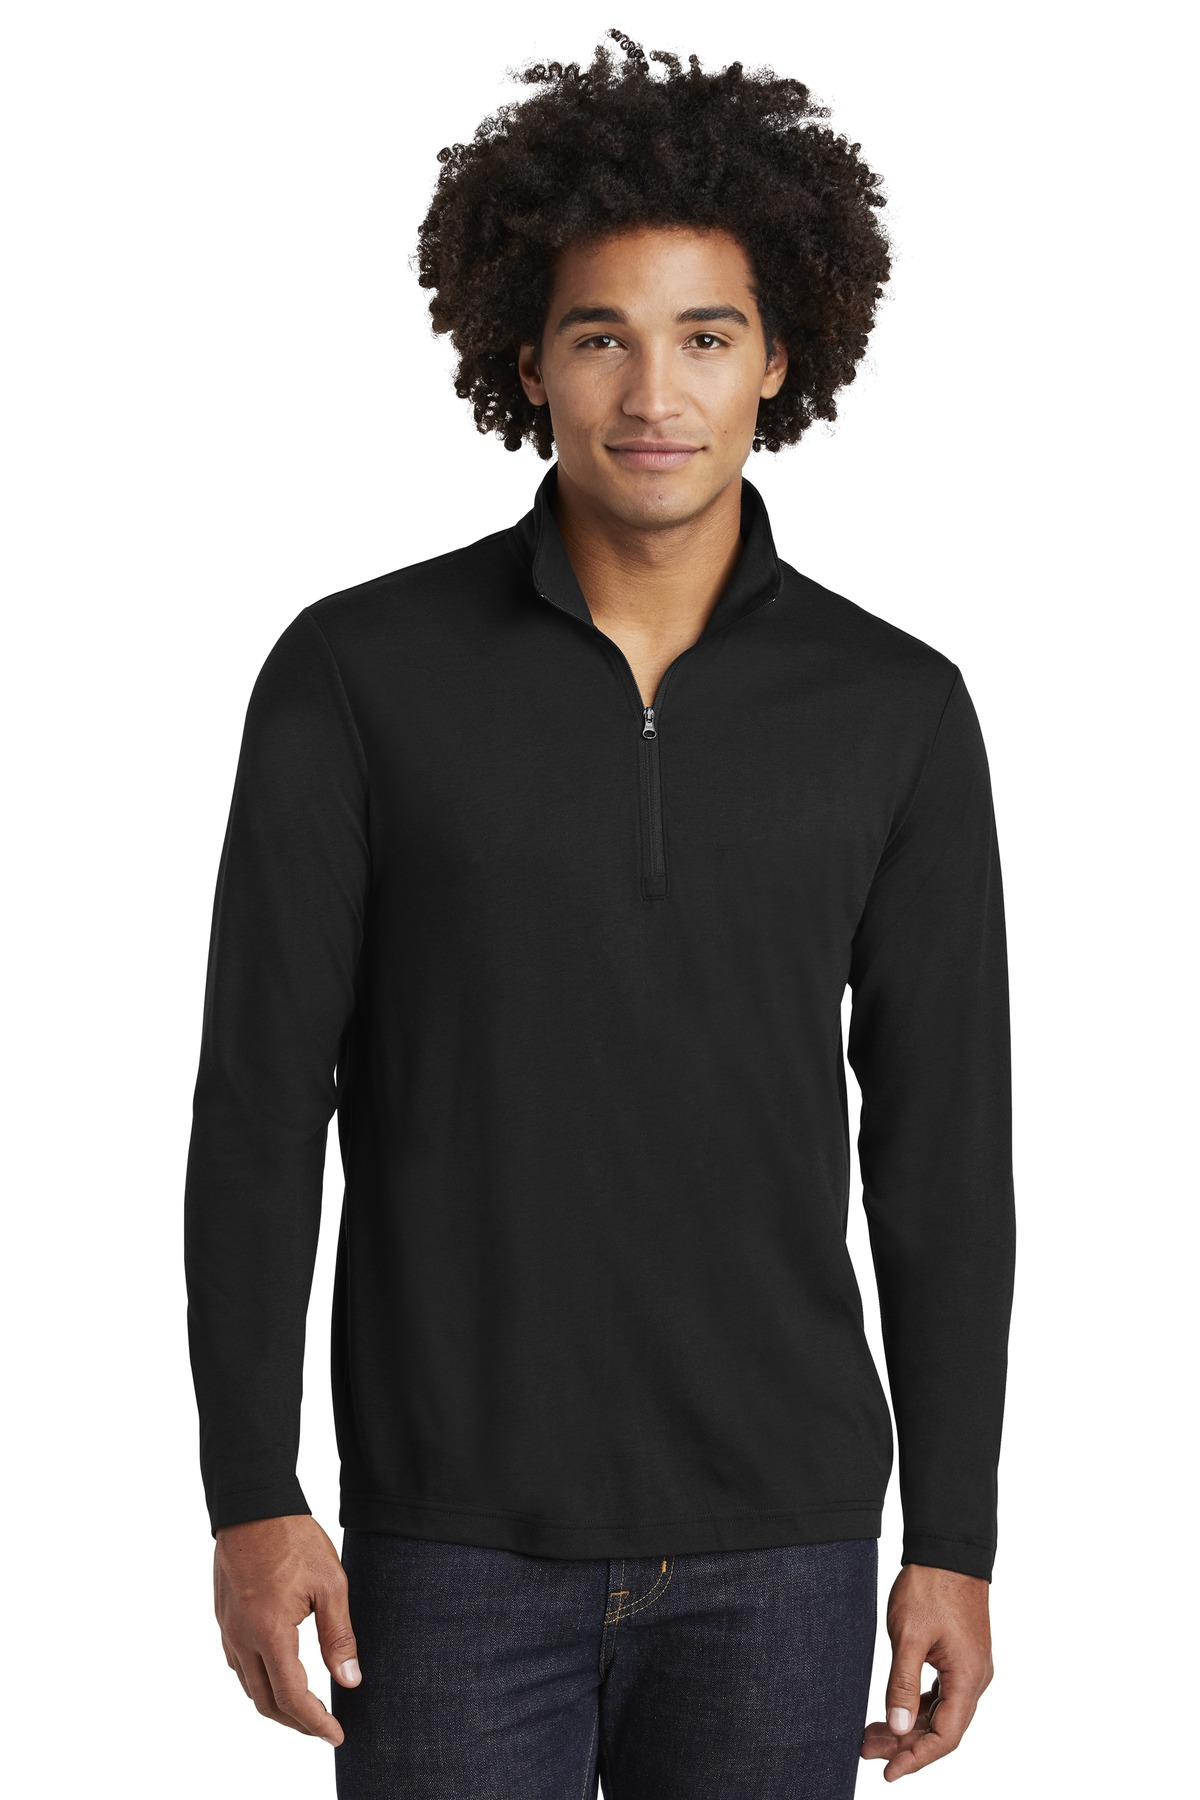 Sport-Tek  ®  PosiCharge  ®  Tri-Blend Wicking 1/4-Zip Pullover. ST407 - Black Triad Solid